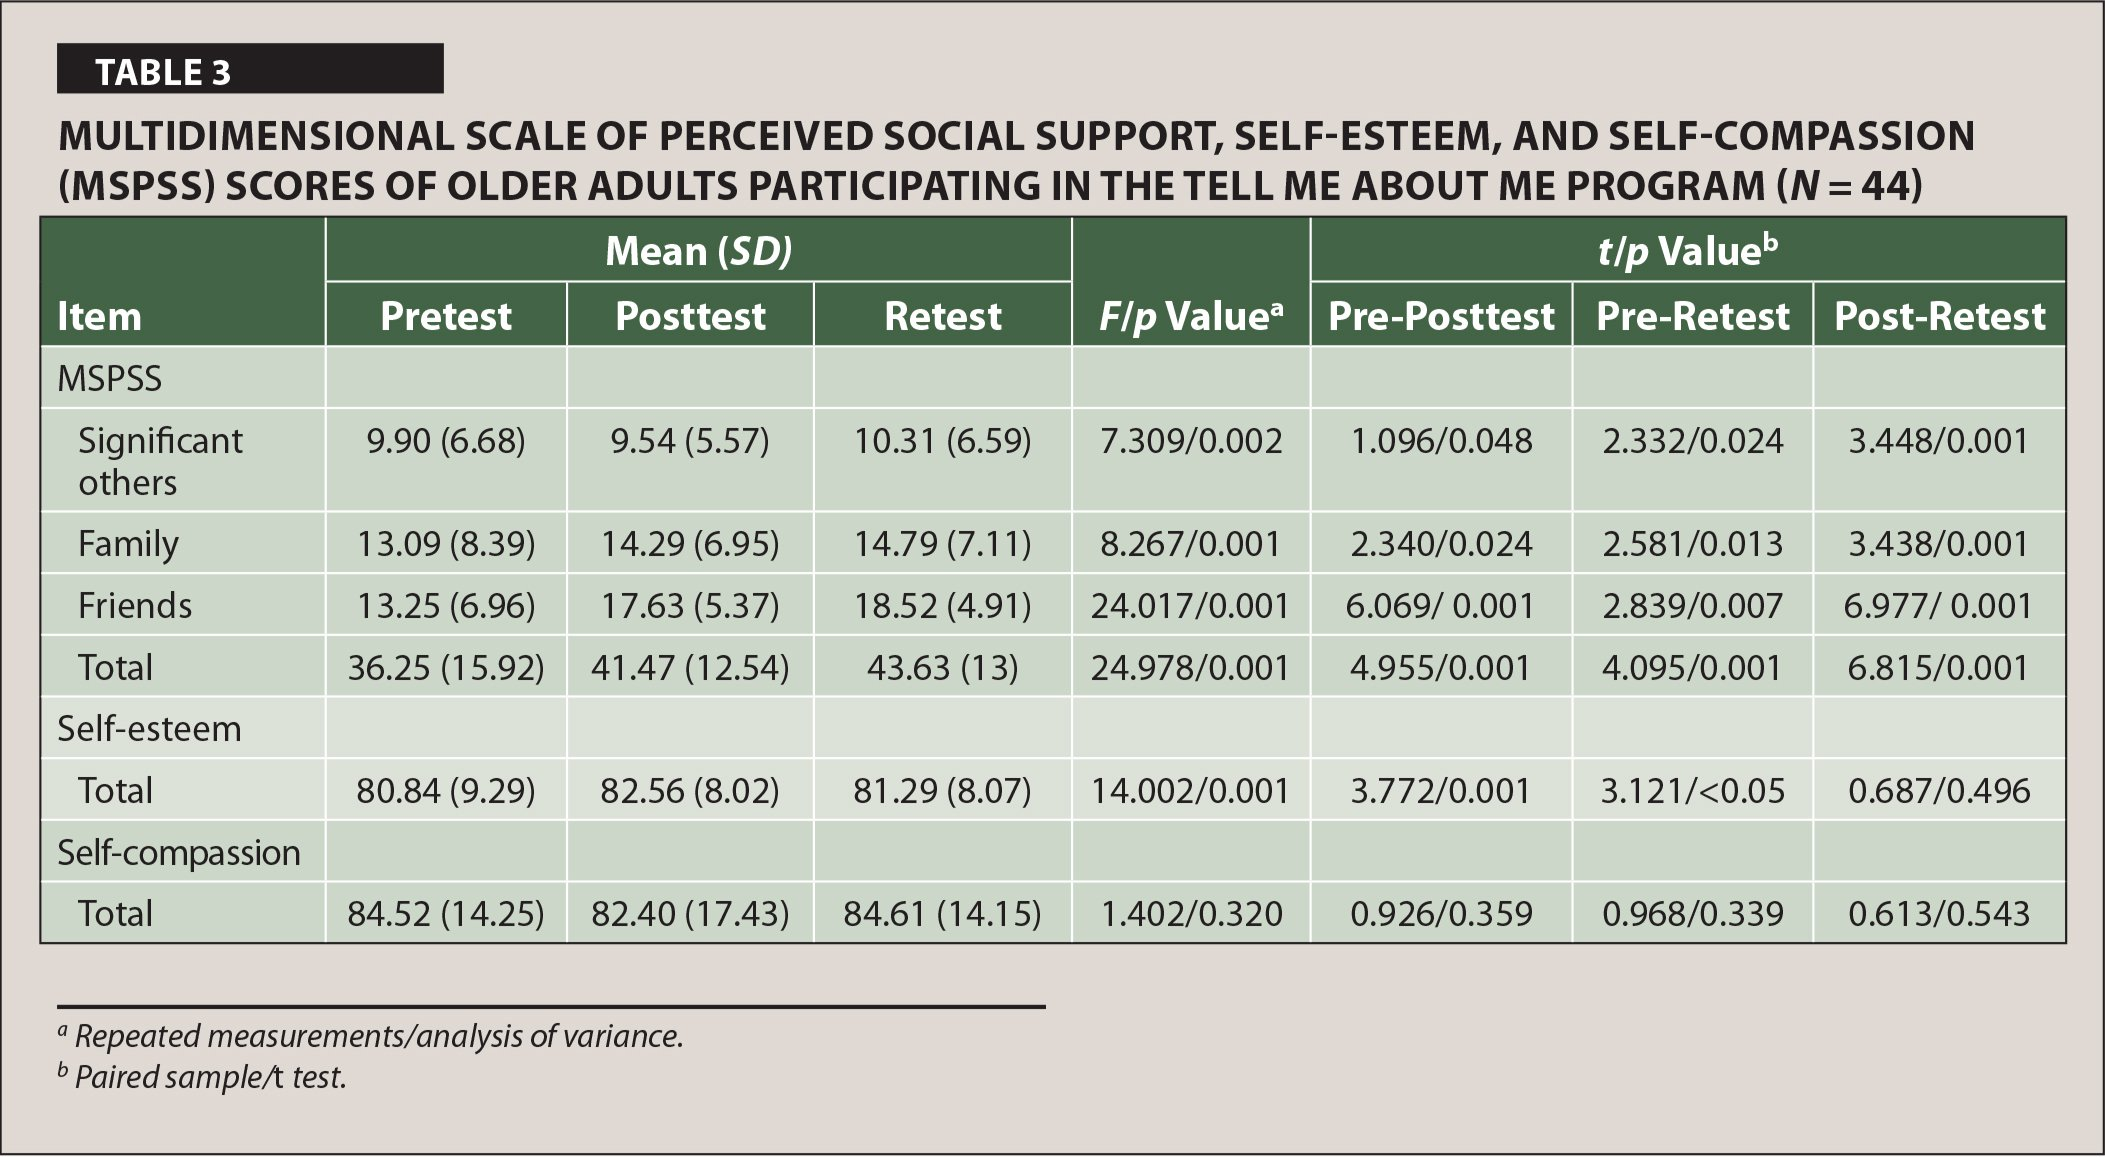 Multidimensional Scale of Perceived Social Support, Self-Esteem, and Self-Compassion (MSPSS) Scores of Older Adults Participating in the Tell Me About Me Program (N = 44)